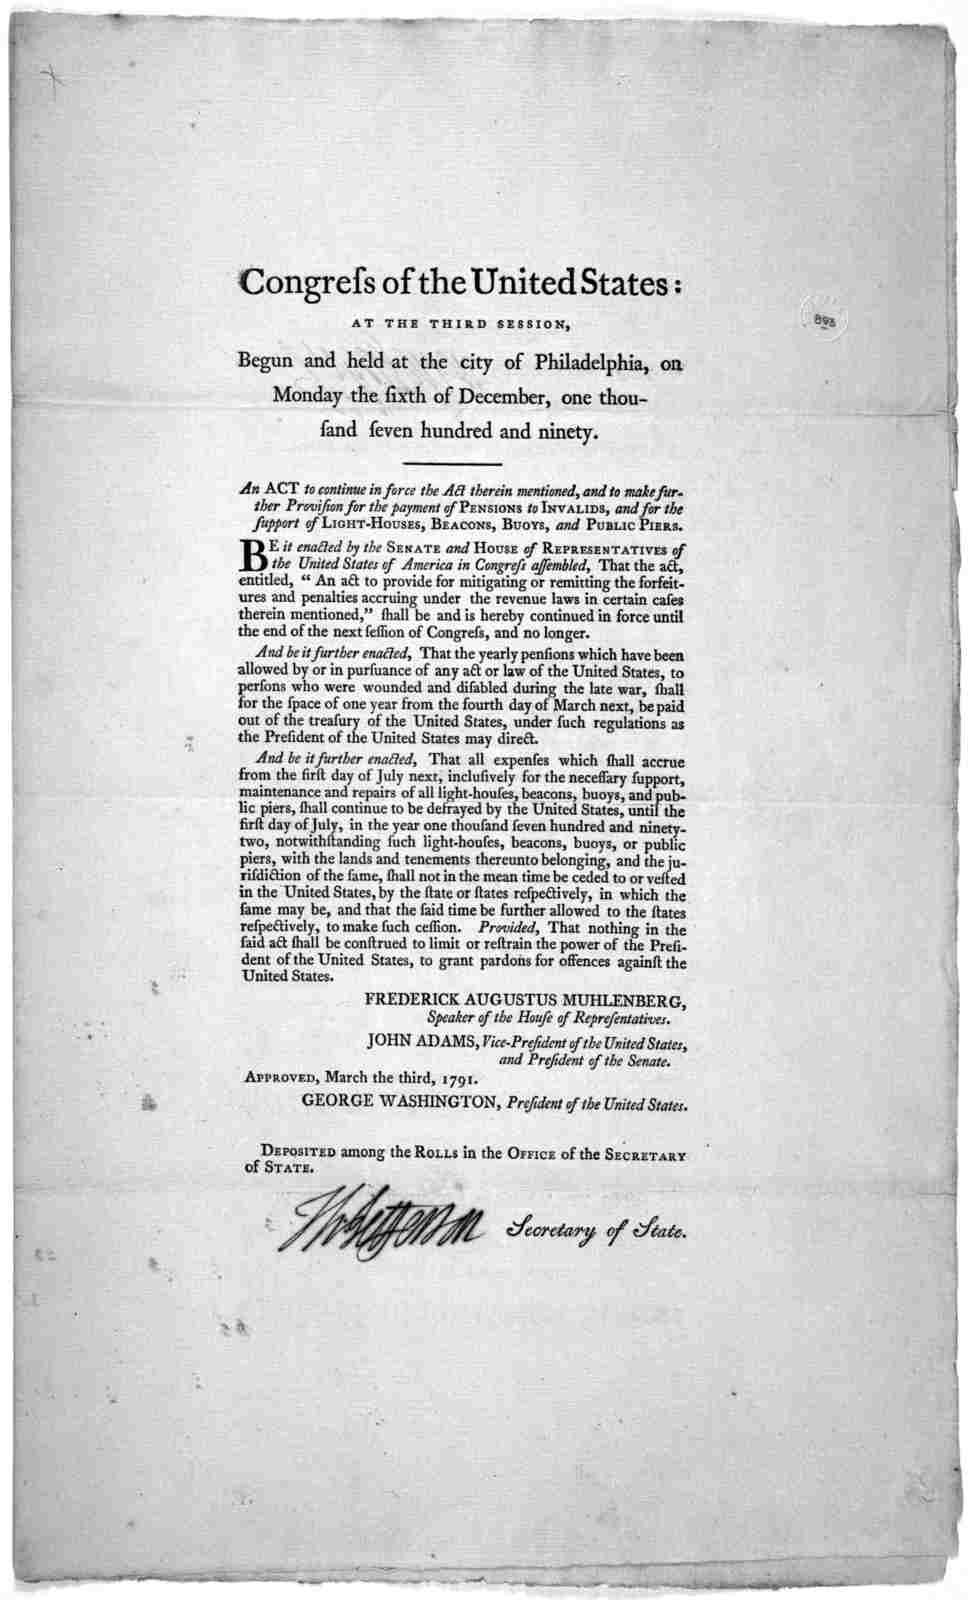 Congress of the United States: at the third session, begun and held at the City of Philadelphia, on Monday the sixth of December, one thousand seven hundred and ninety. An act to continue in force the act therein mentioned, and to make further p